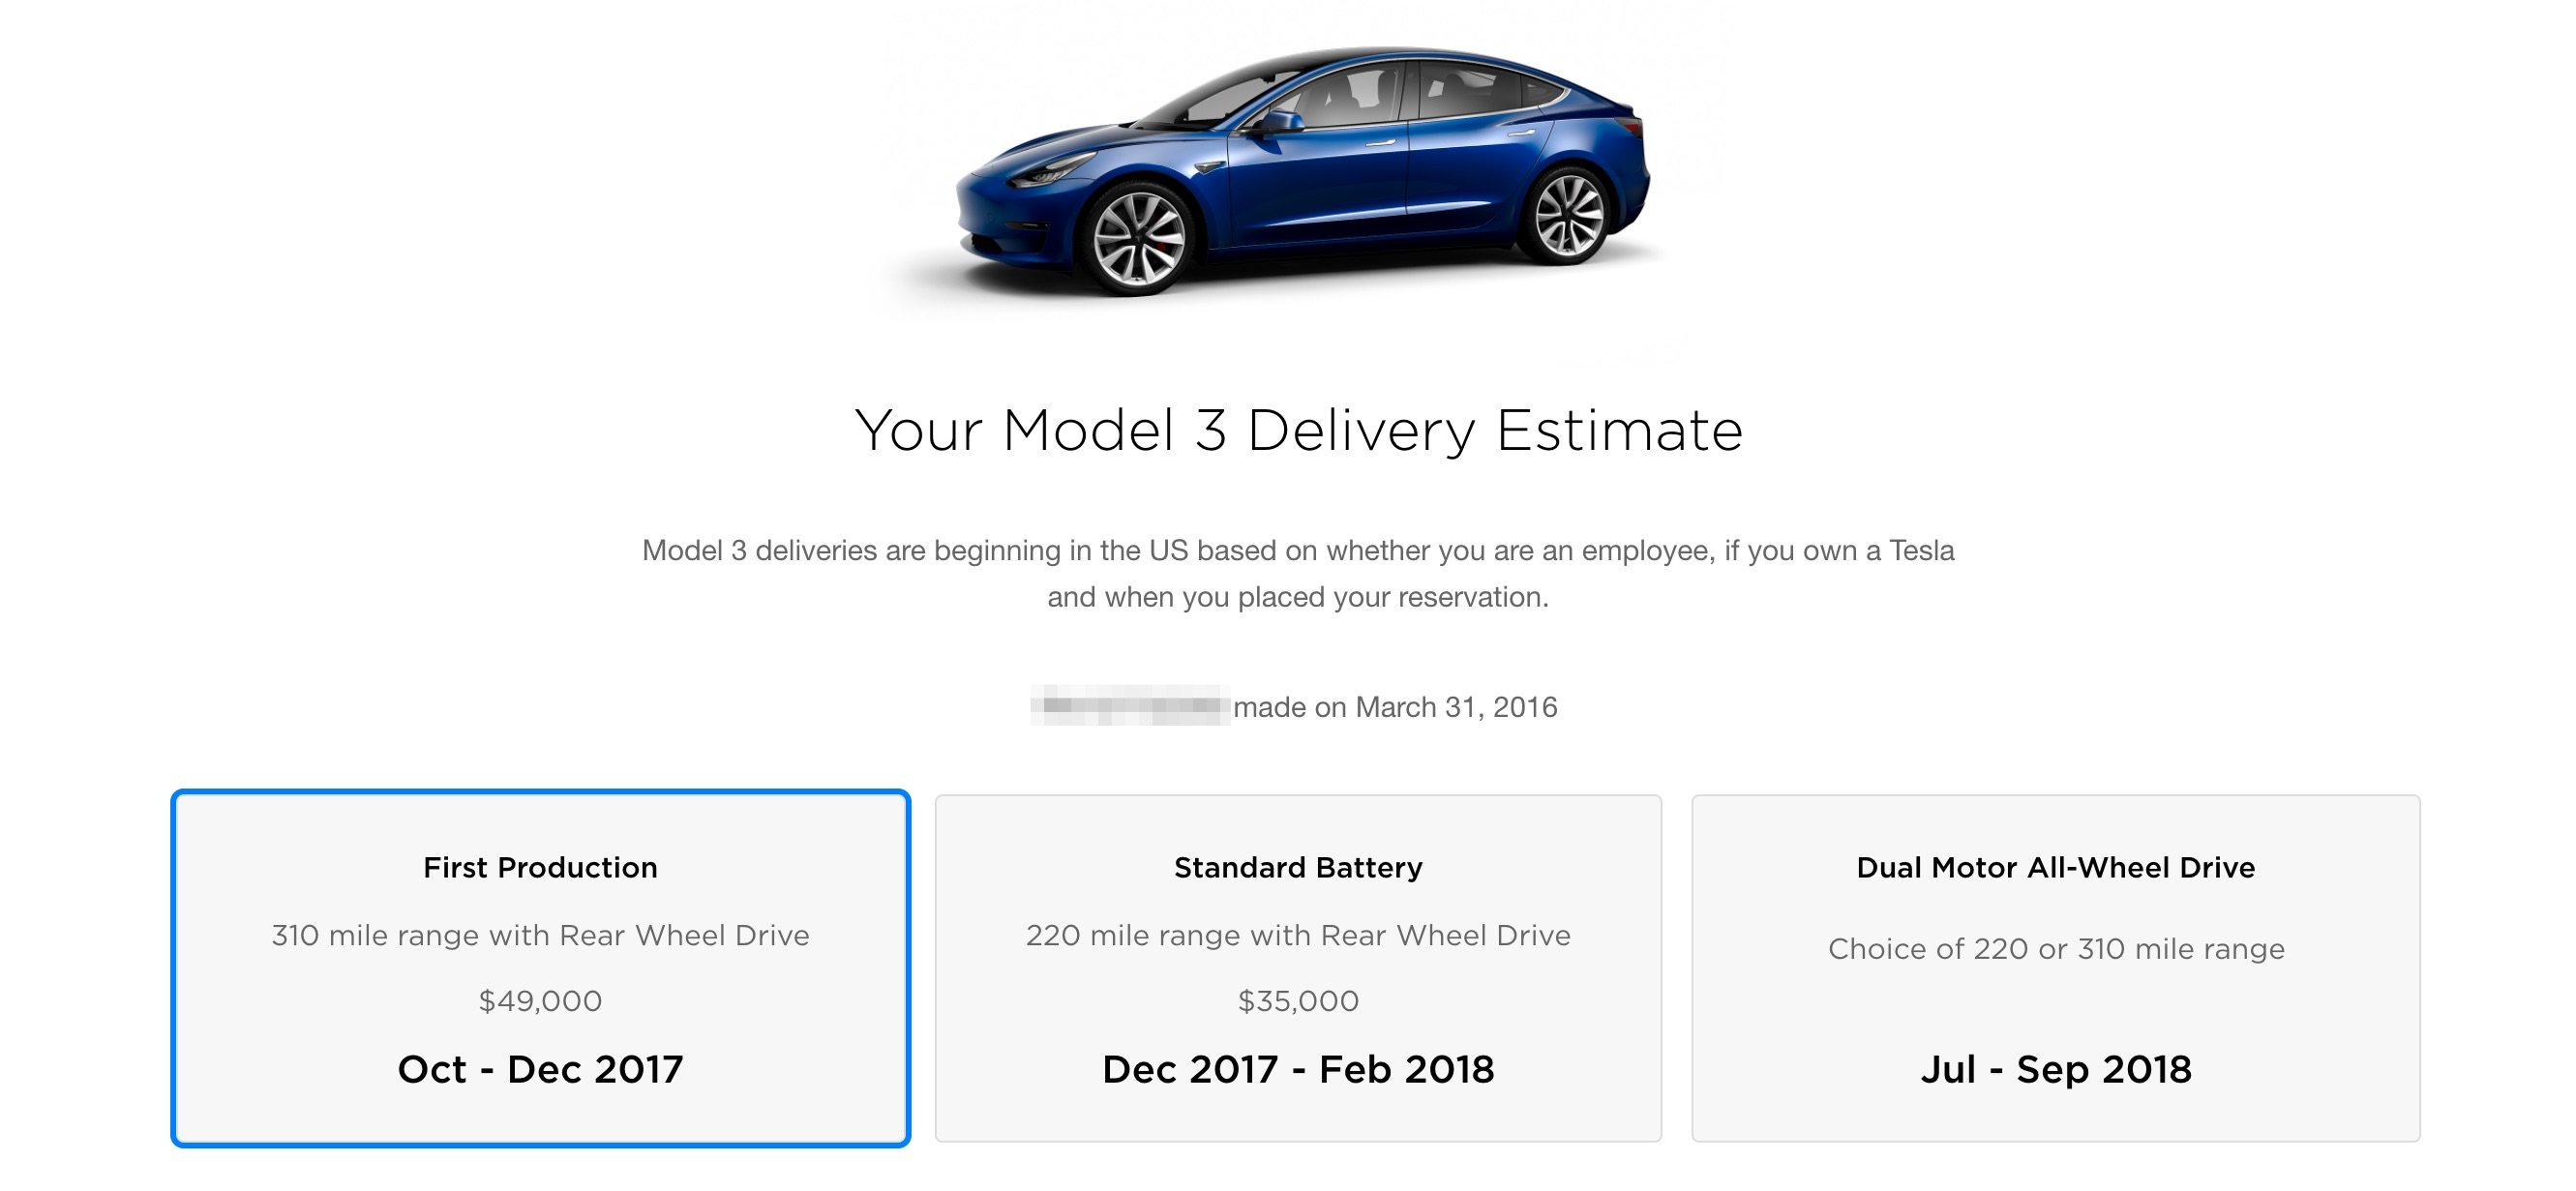 tesla-model-3-delivery-estimate-first-production